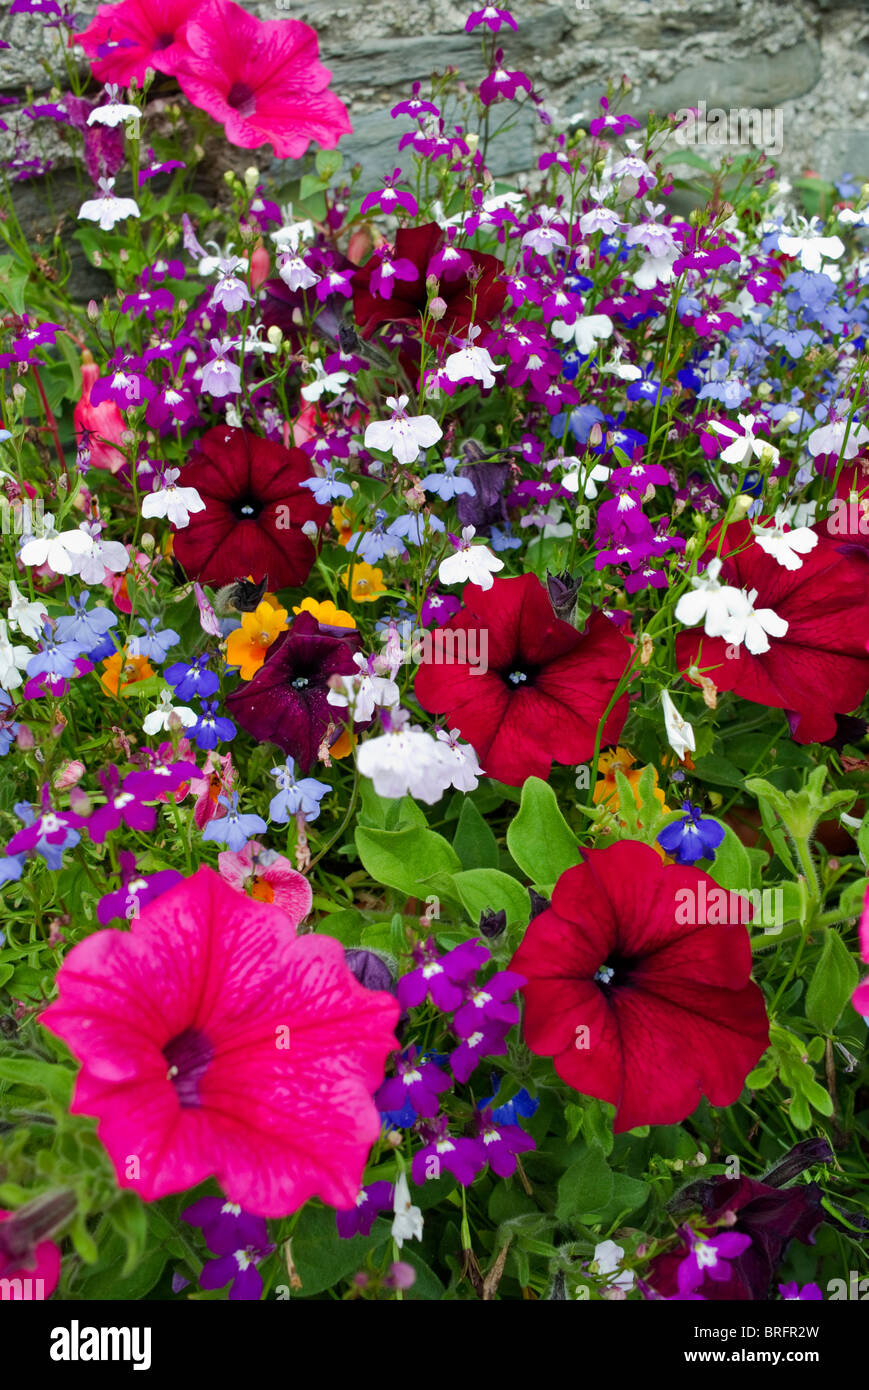 A massive array of colorful flowers in a window box - Stock Image